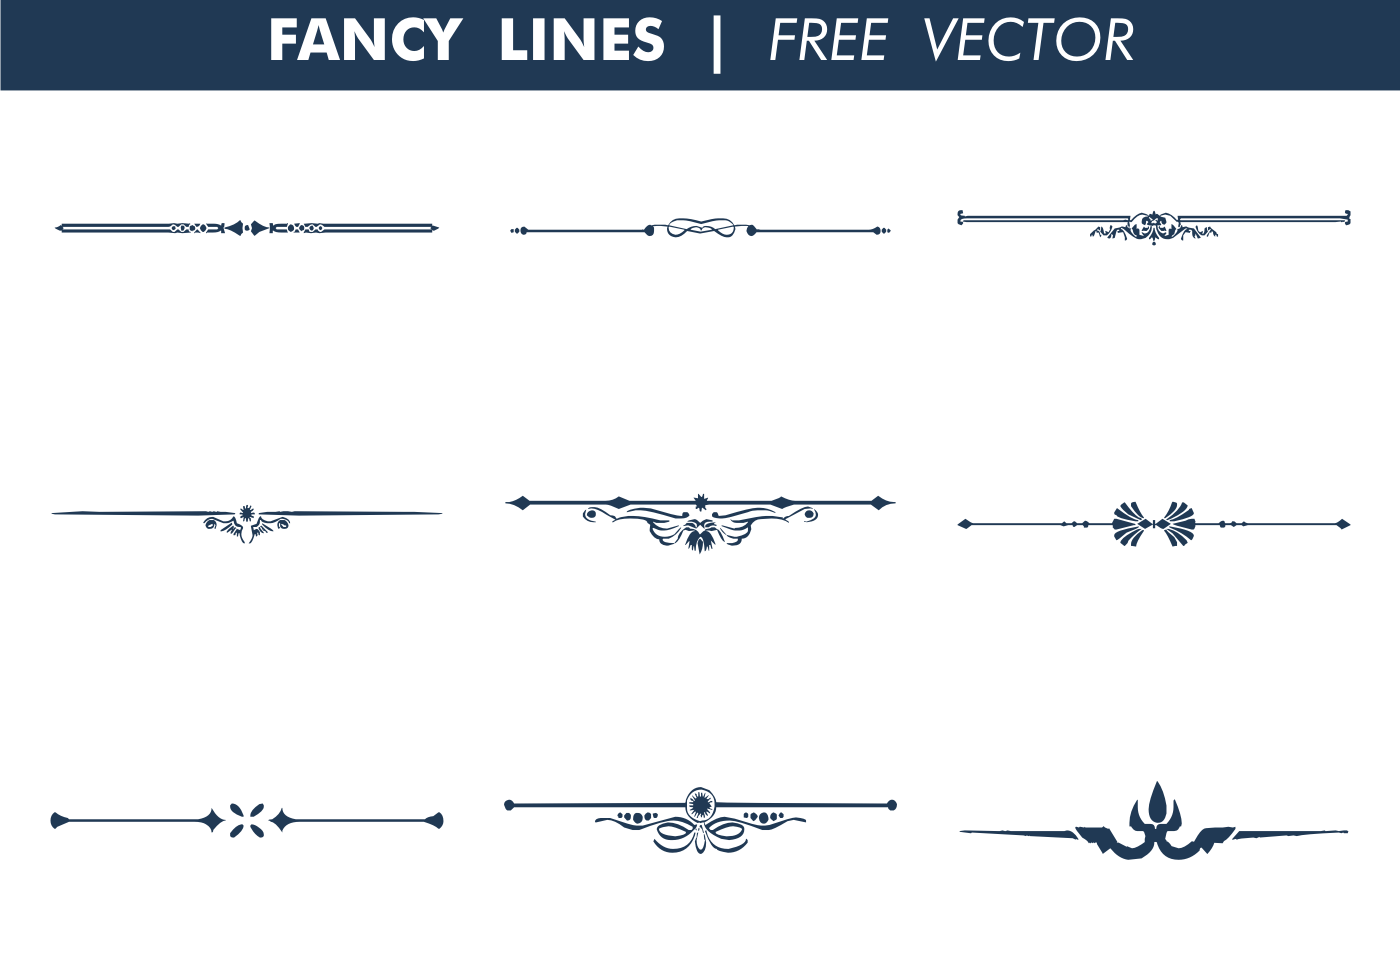 Vector Drawing Lines Java : Decorative fancy lines free vector download